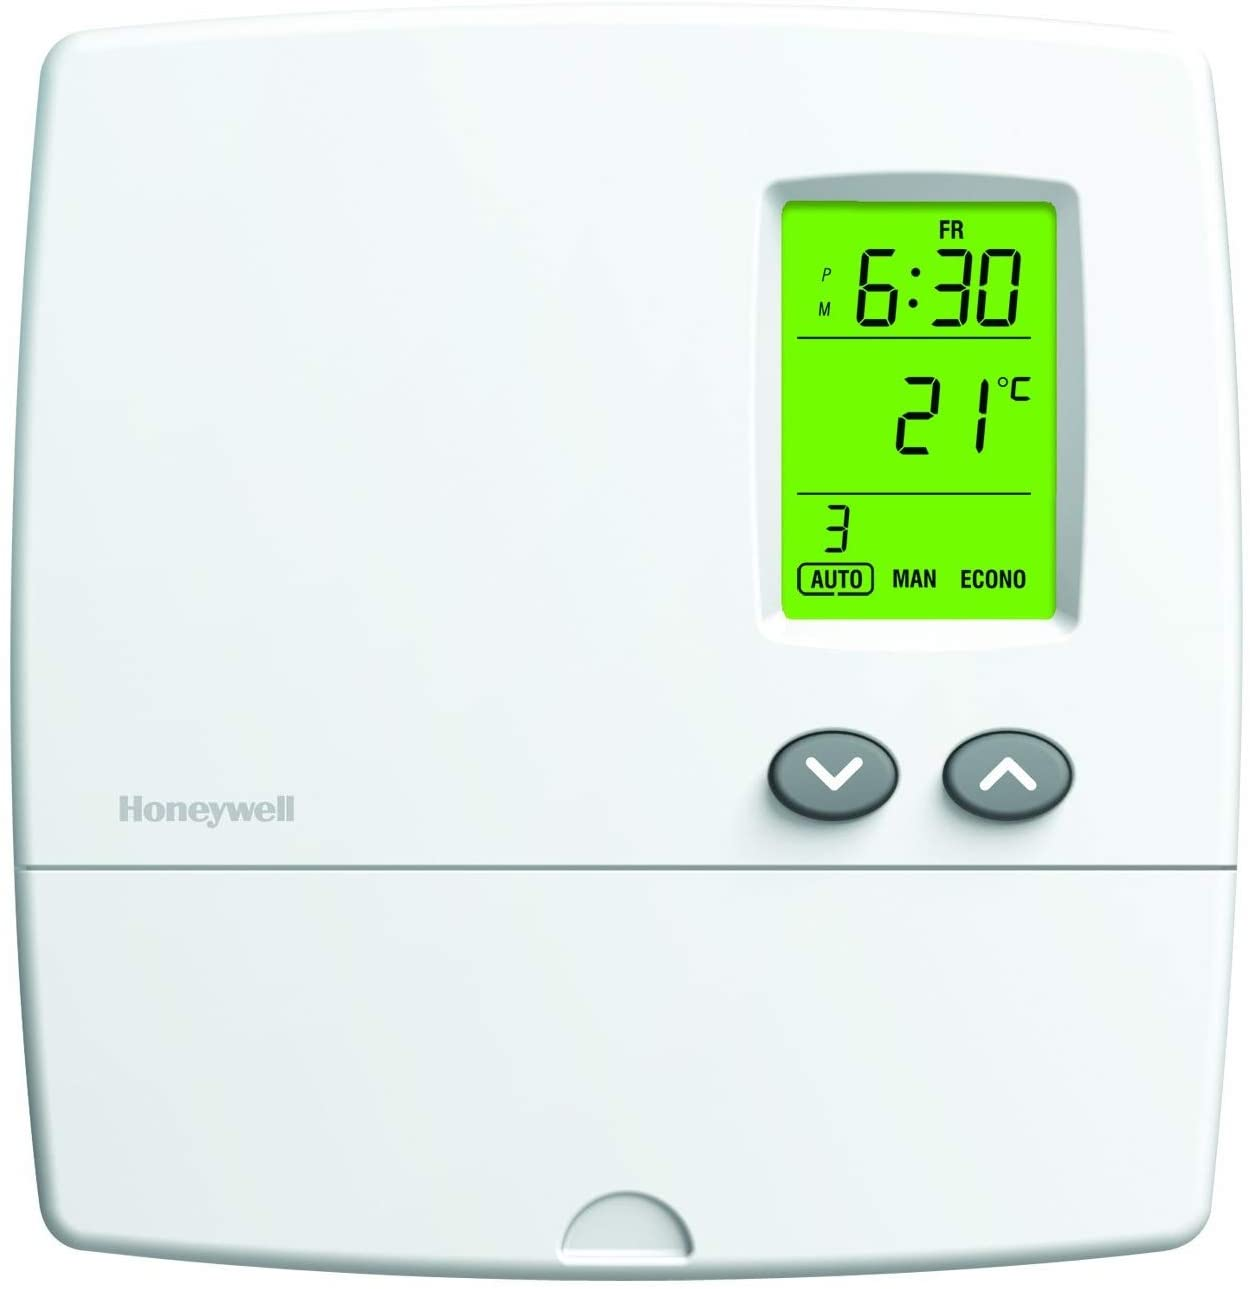 Honeywell Home YRLV4300A1014 Programmable Electric Baseboard Heater Thermostat/Reads Out in Celsius, Convertible to Fahrenheit with Menu, White